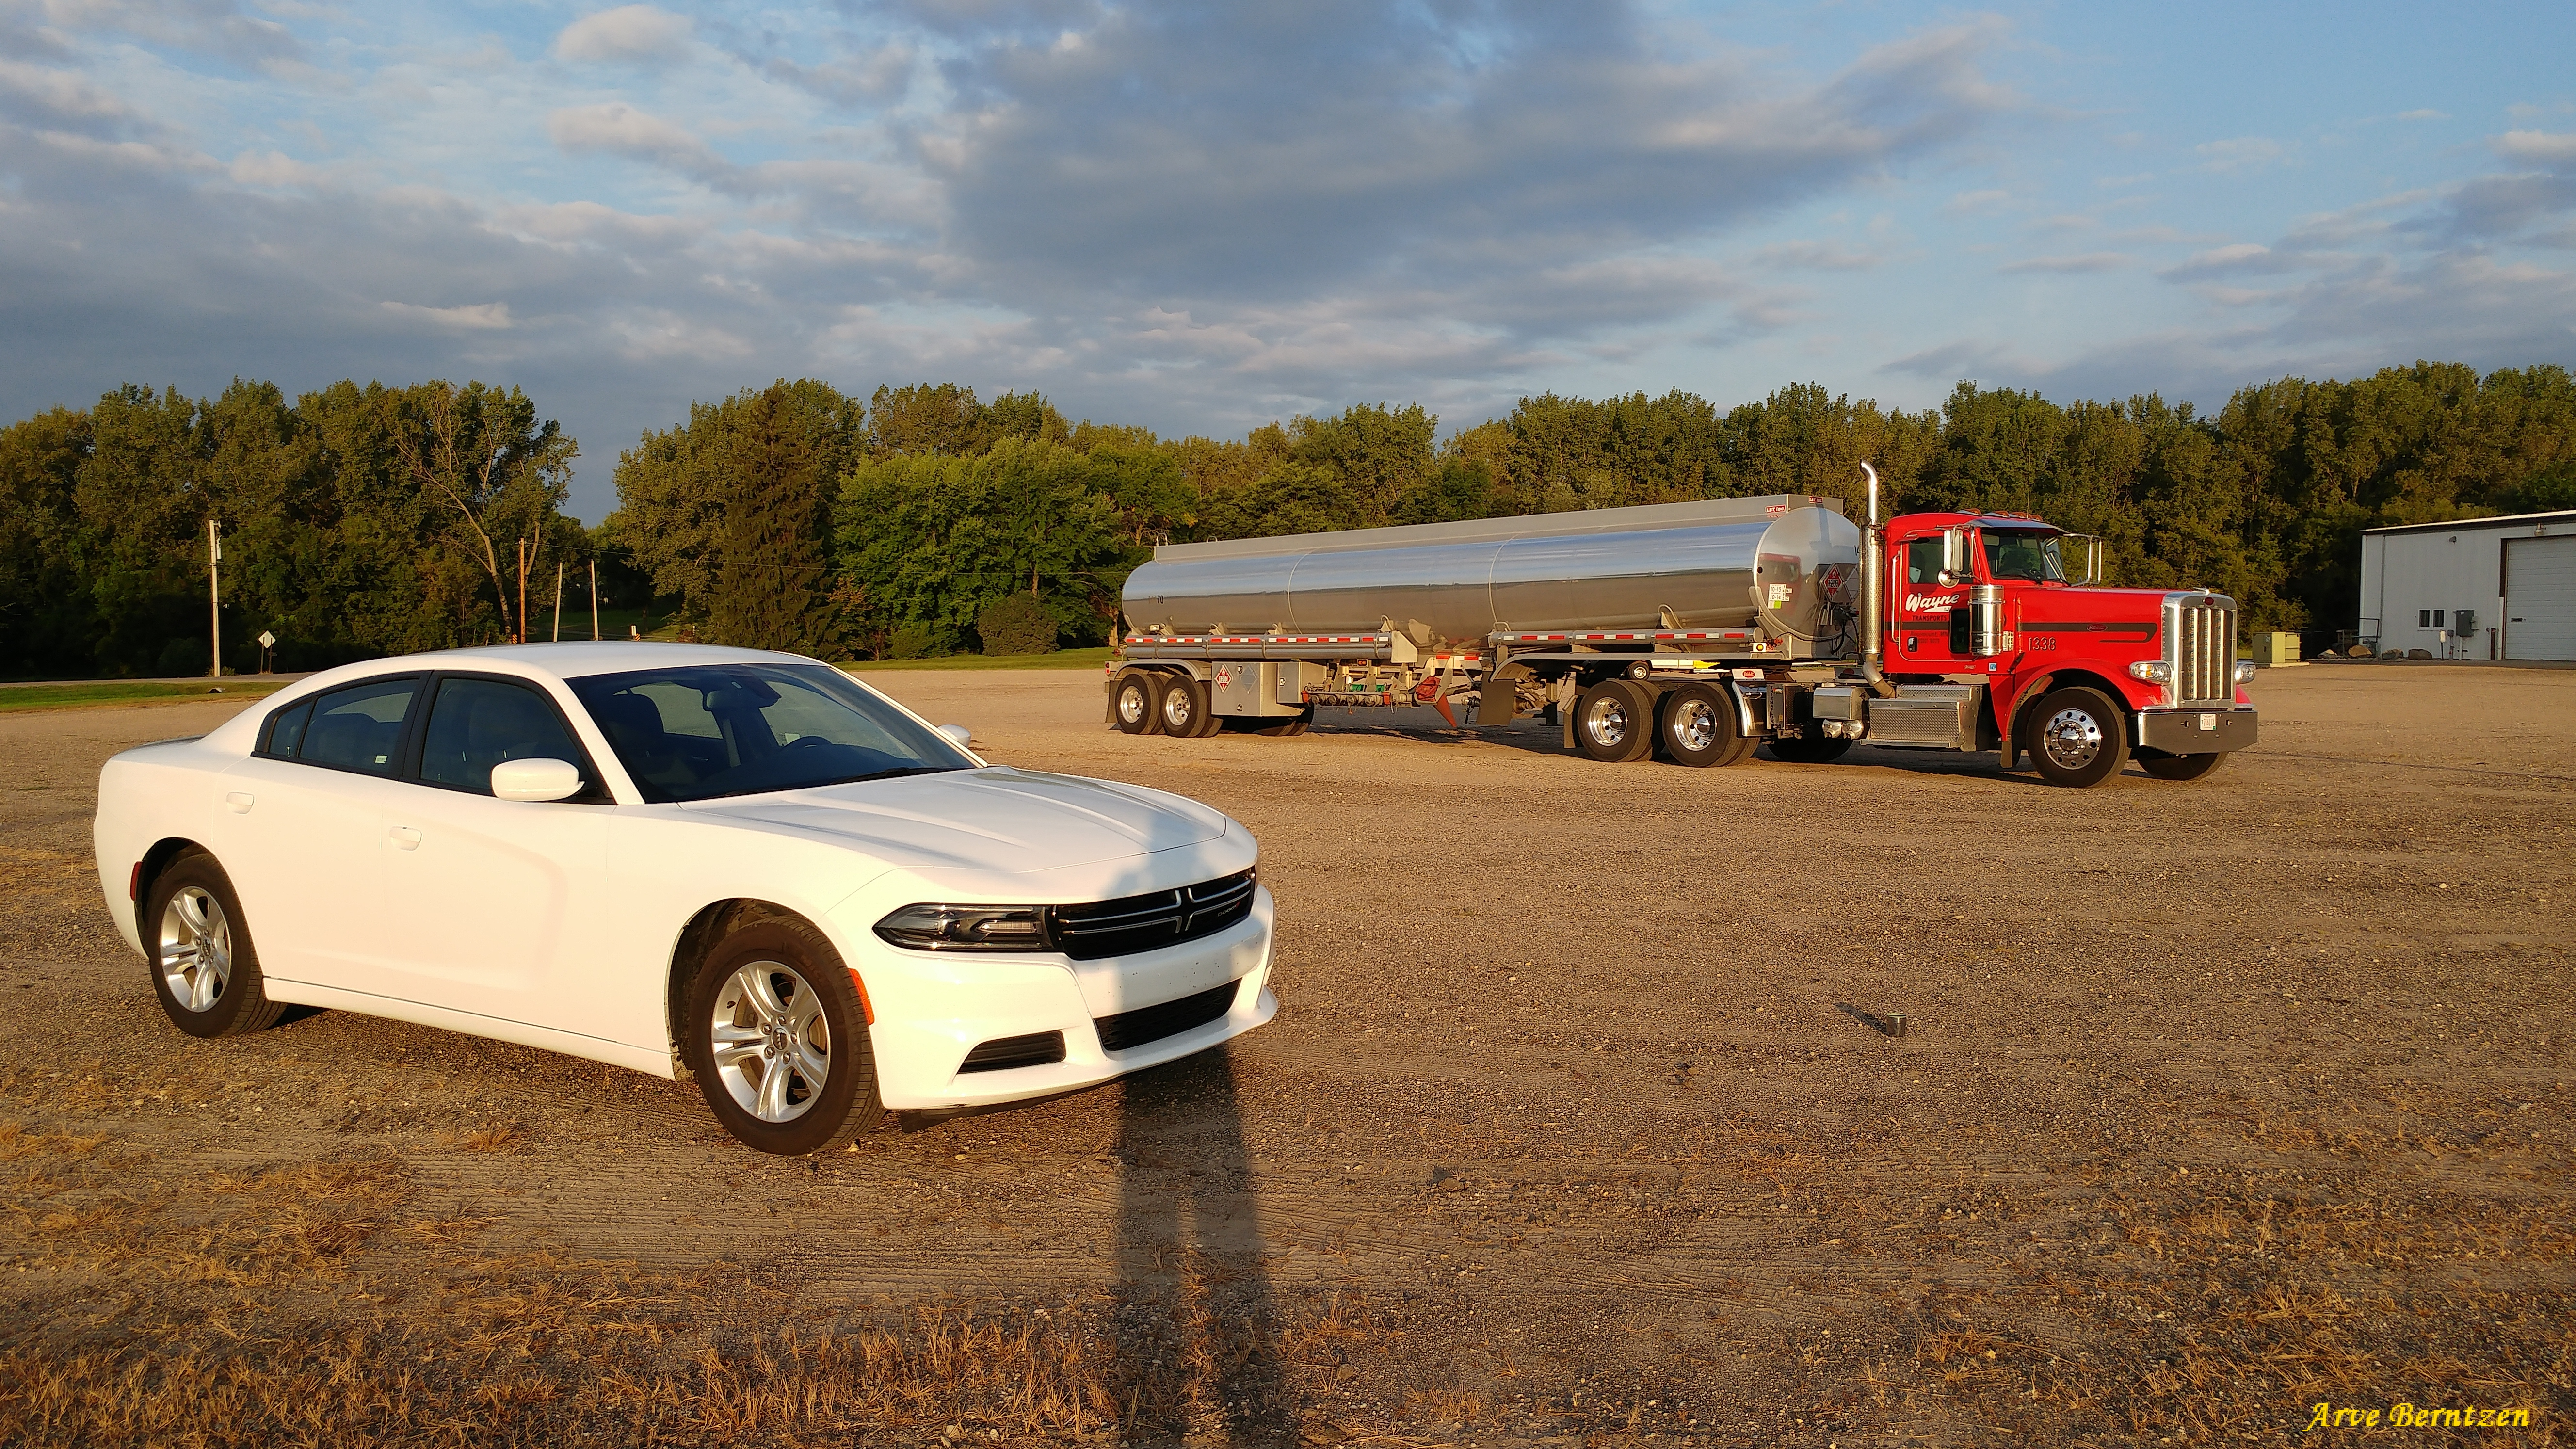 Dodge Charger and Peterbilt